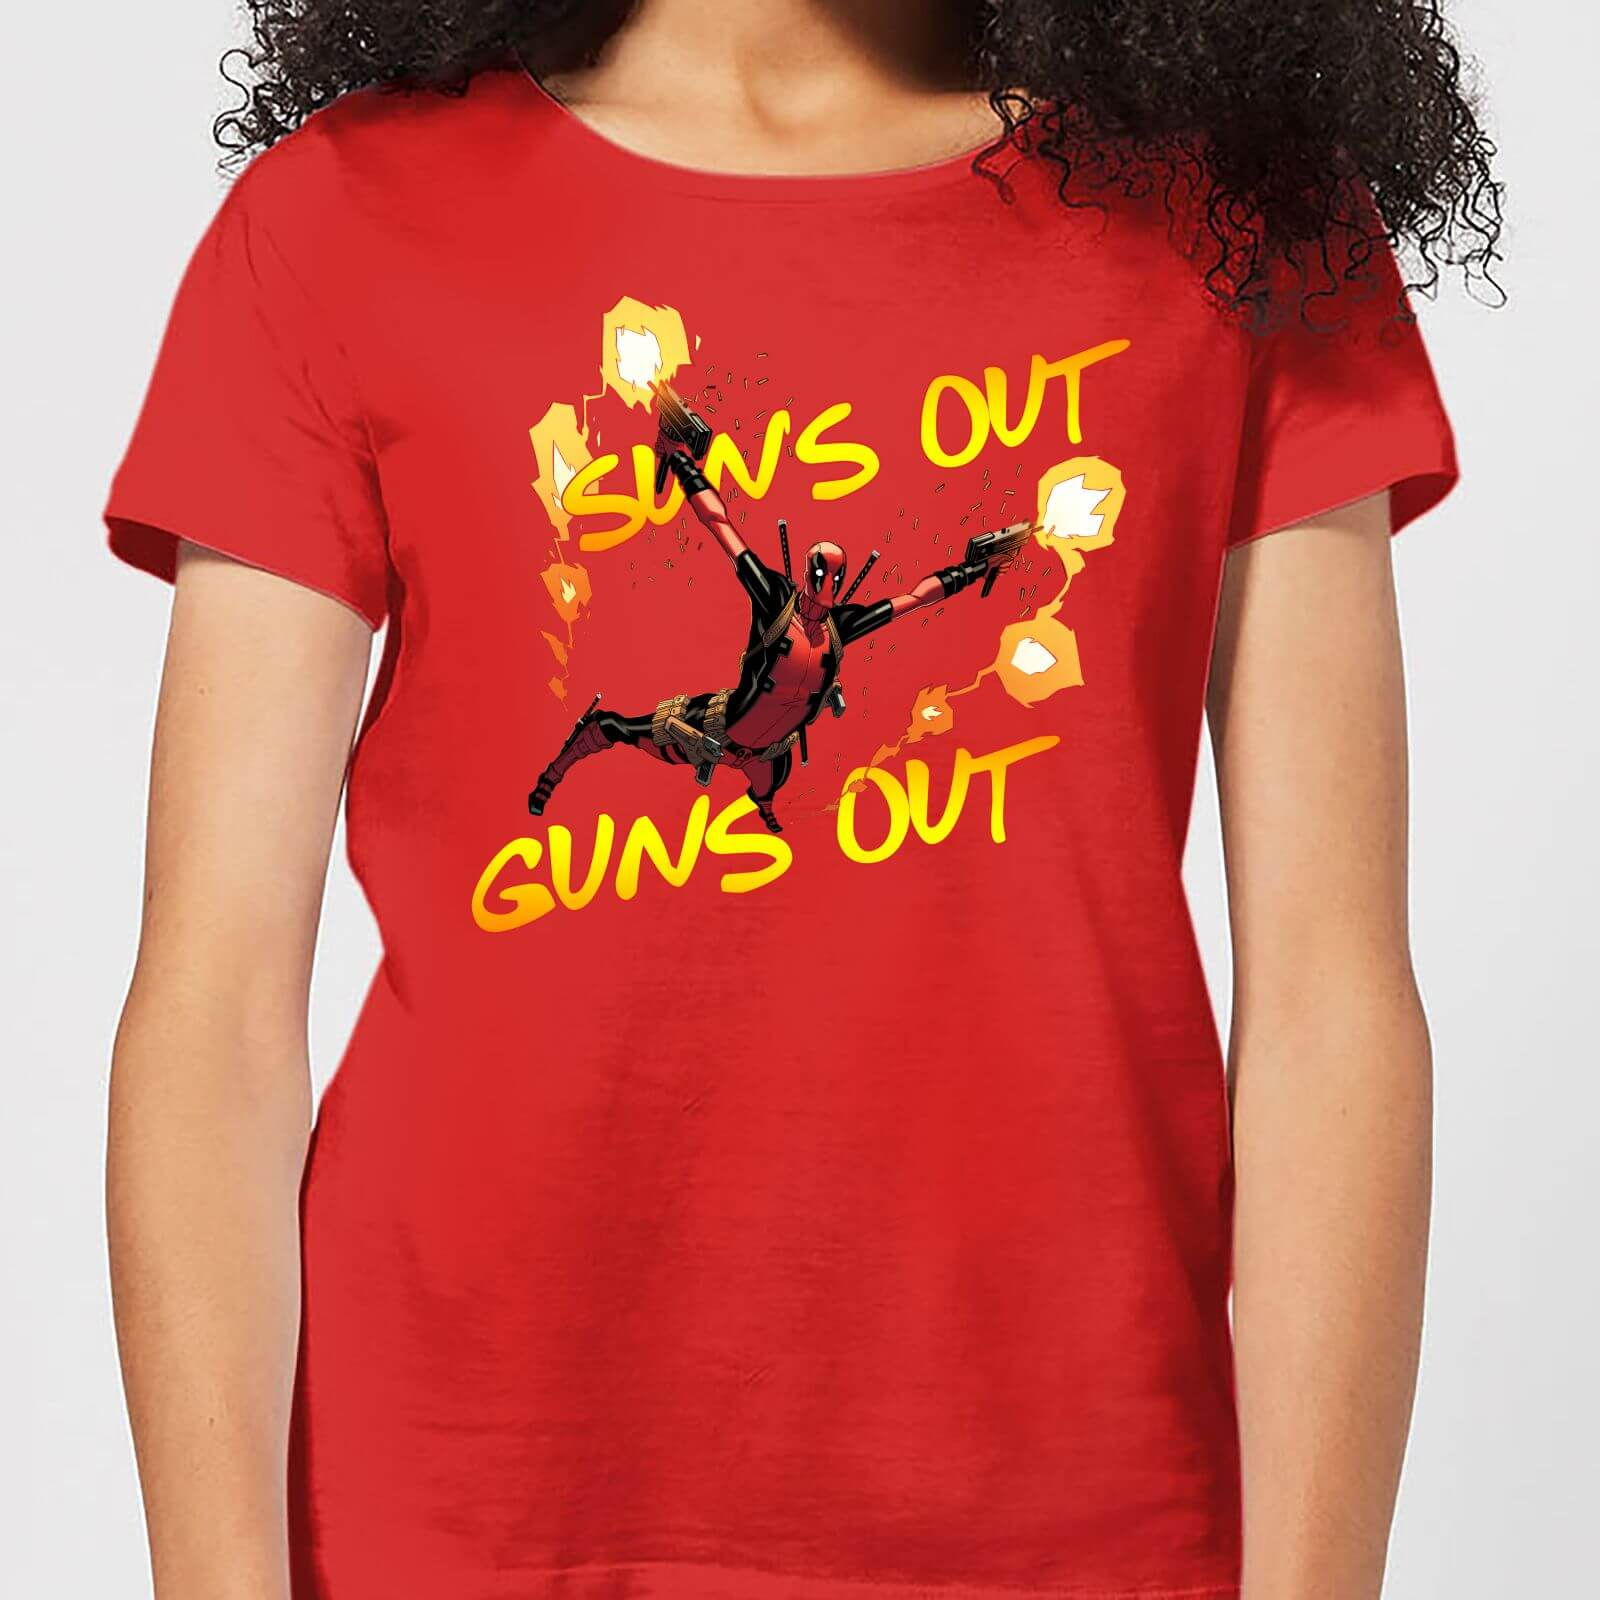 OfferteWeb.click 61-t-shirt-marvel-deadpool-suns-out-guns-out-rosso-donna